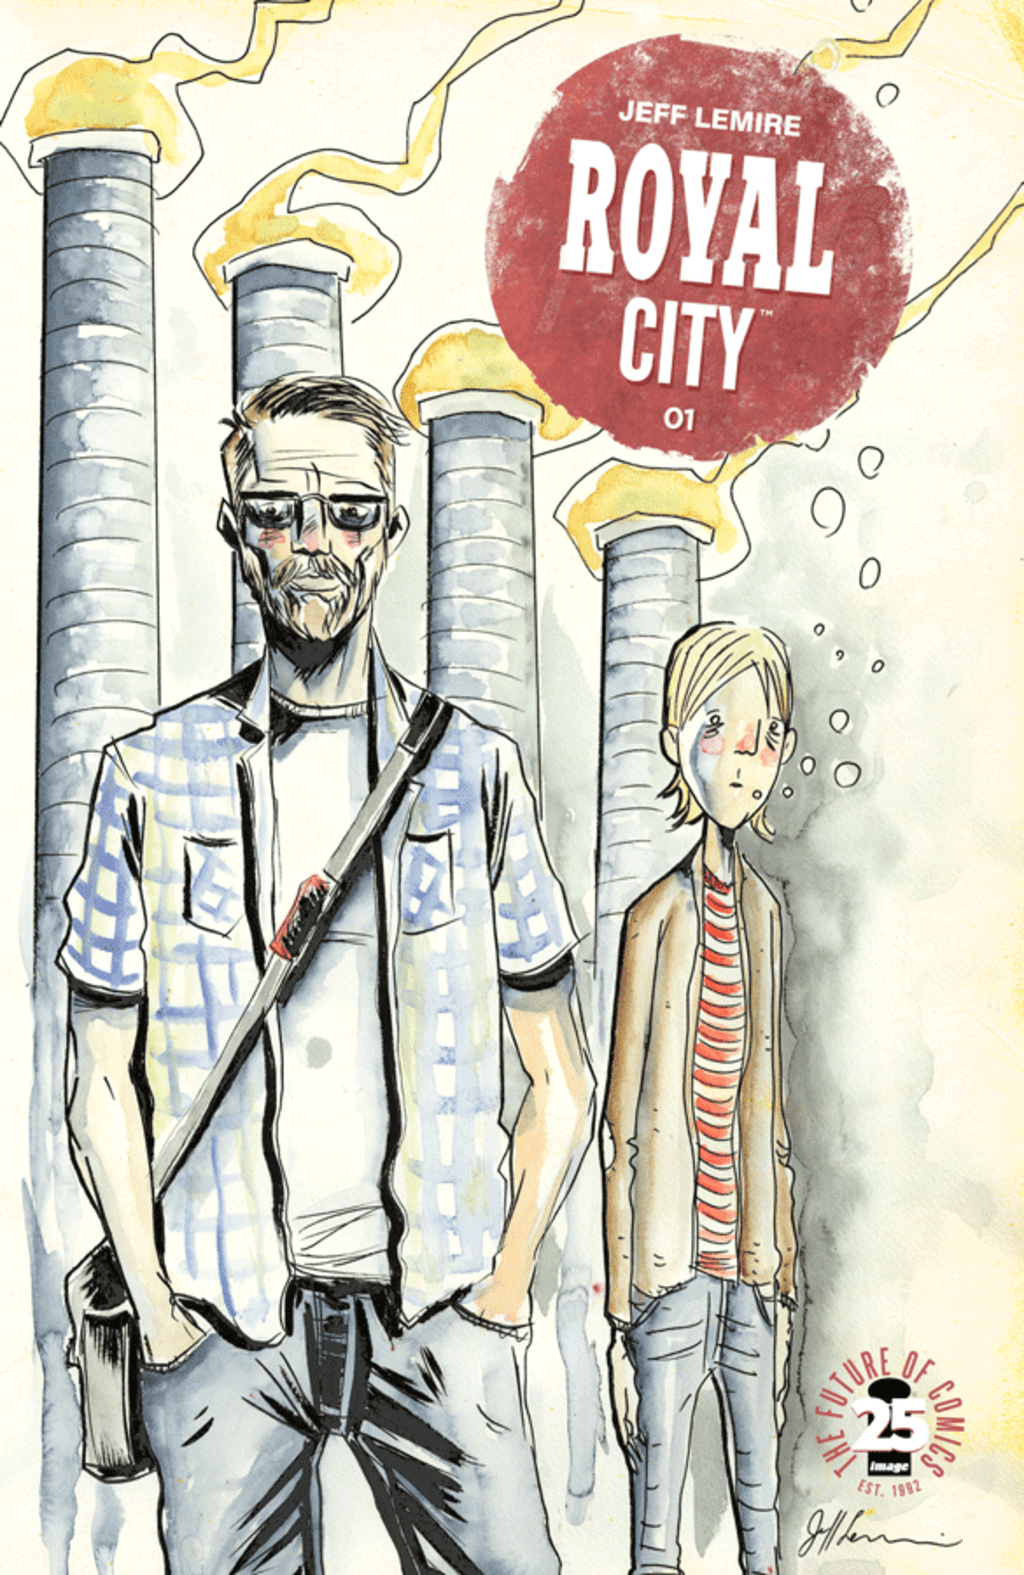 A Haunting Slice of Life by Jeff Lemire